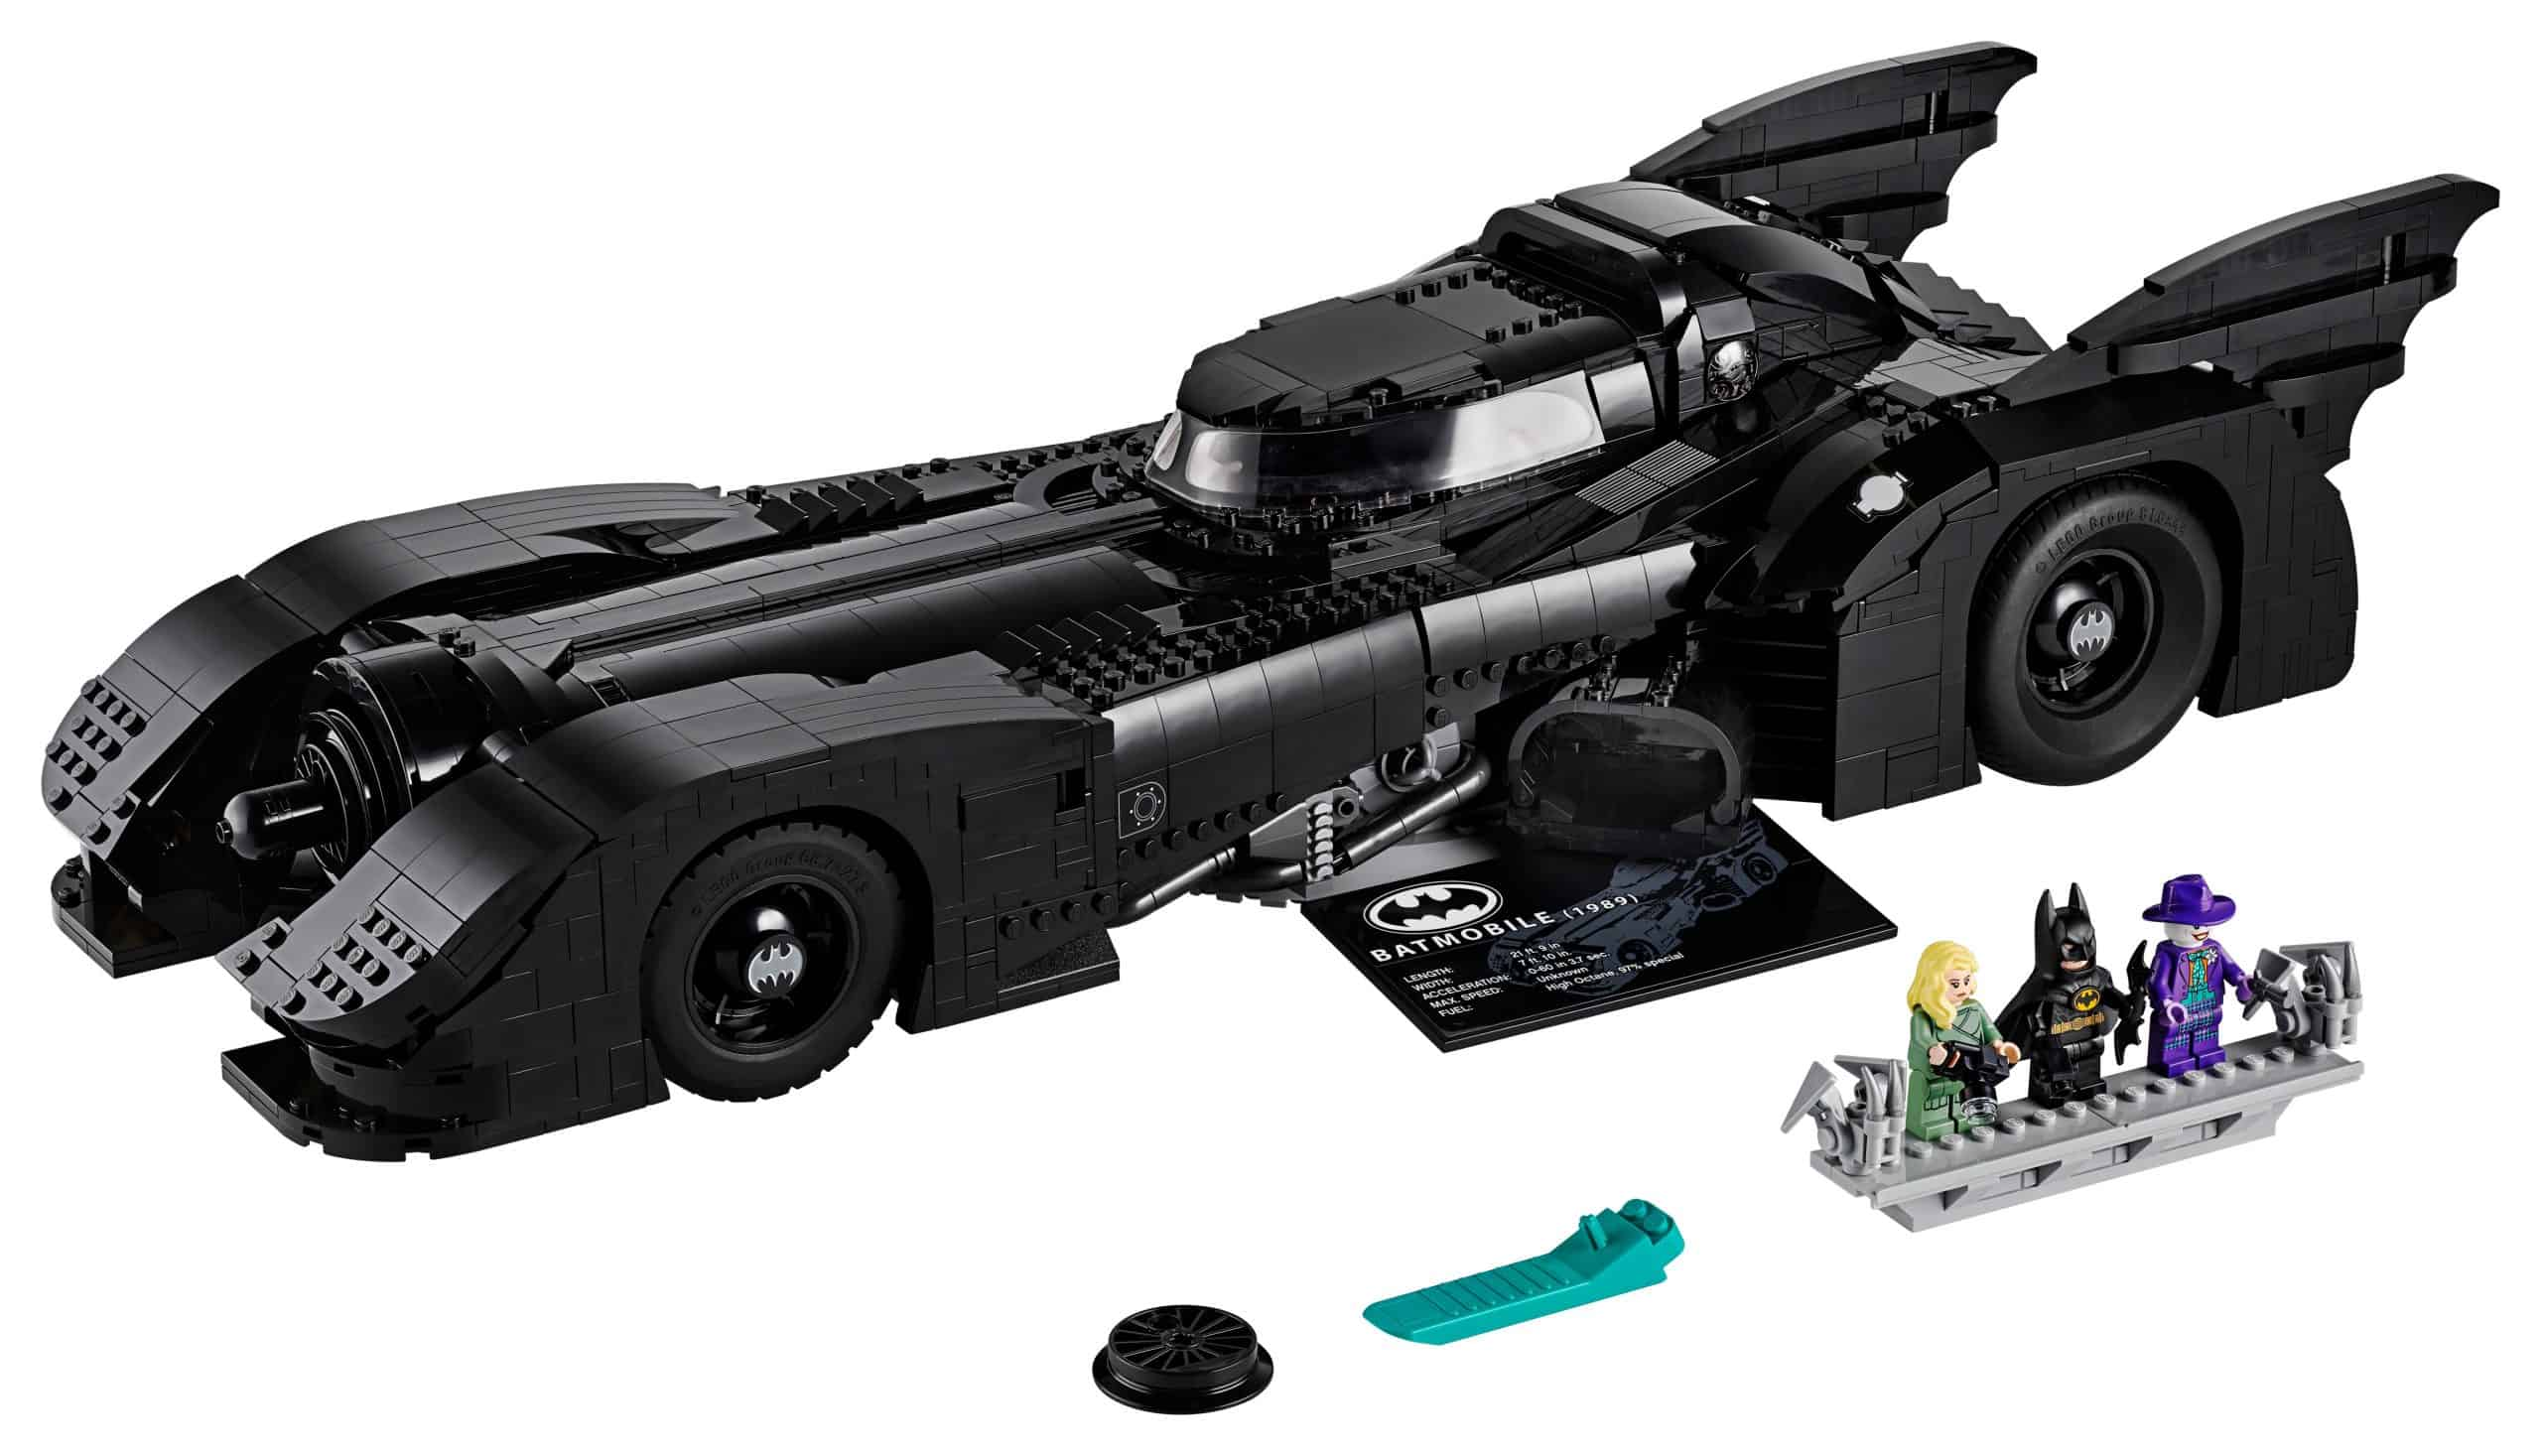 lego 1989 batmobile 76139 scaled